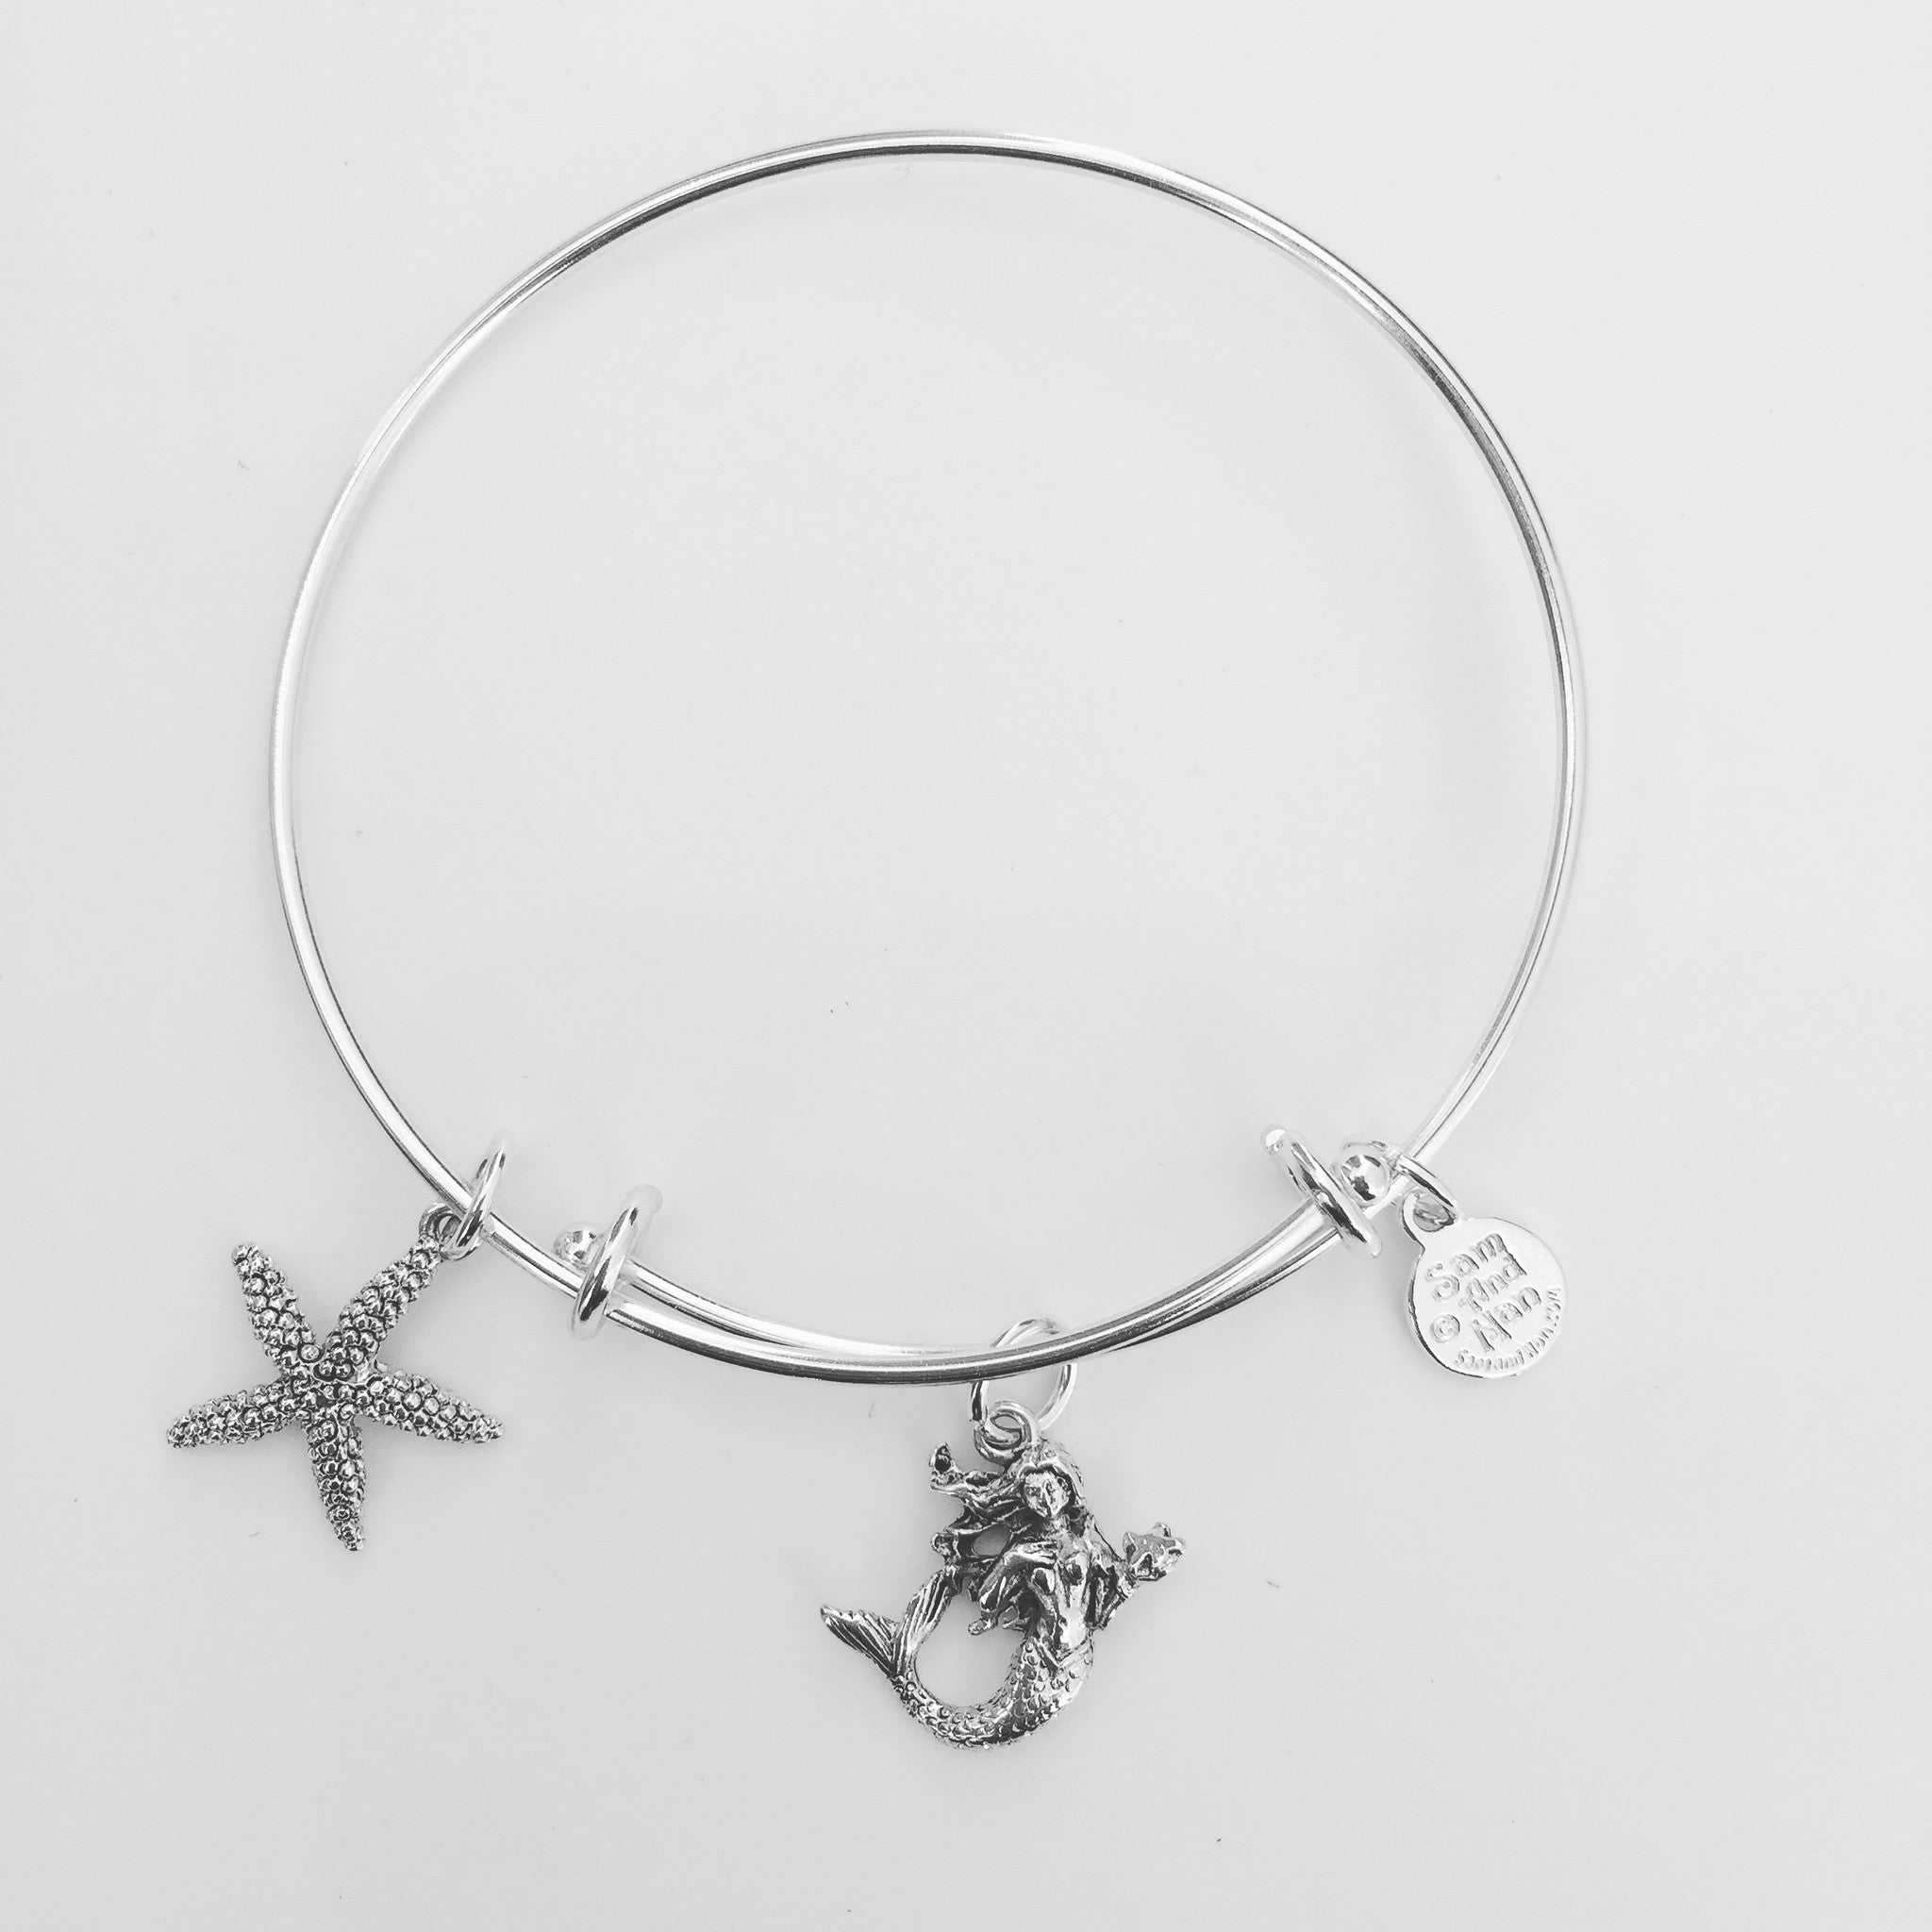 Mermaid Starfish Bangle Bracelet - SamandNan